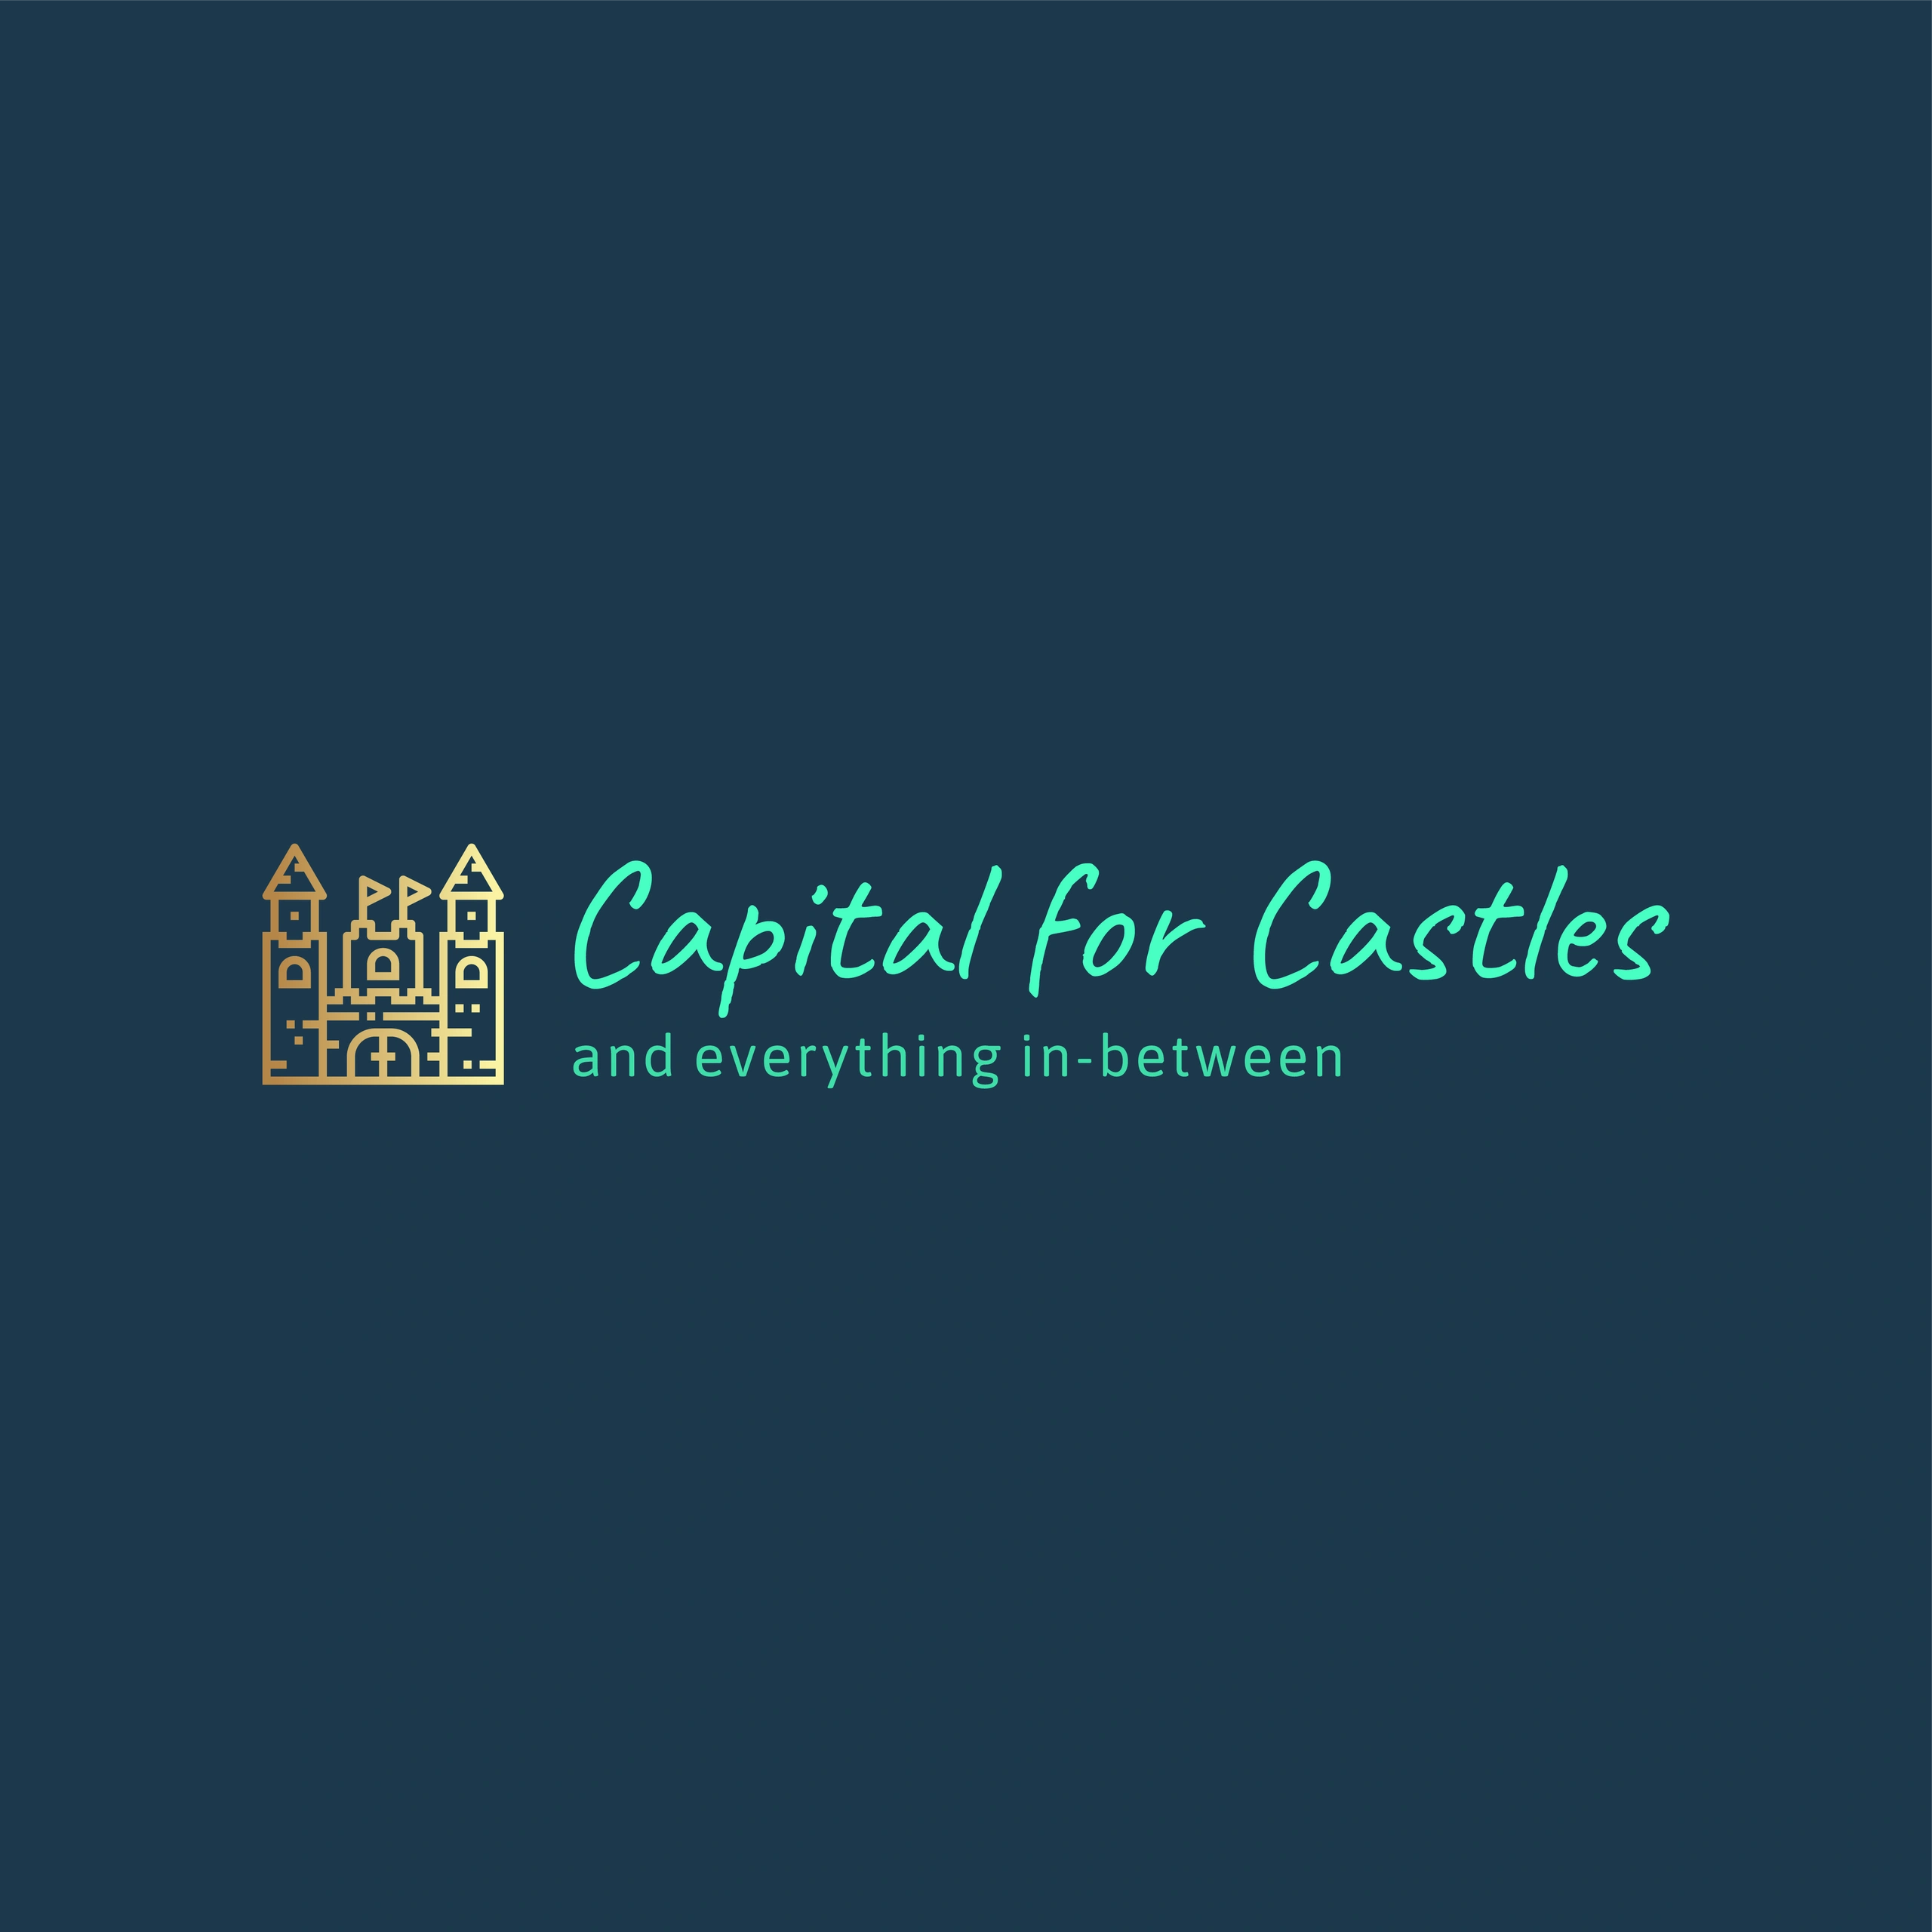 Capital for Castles